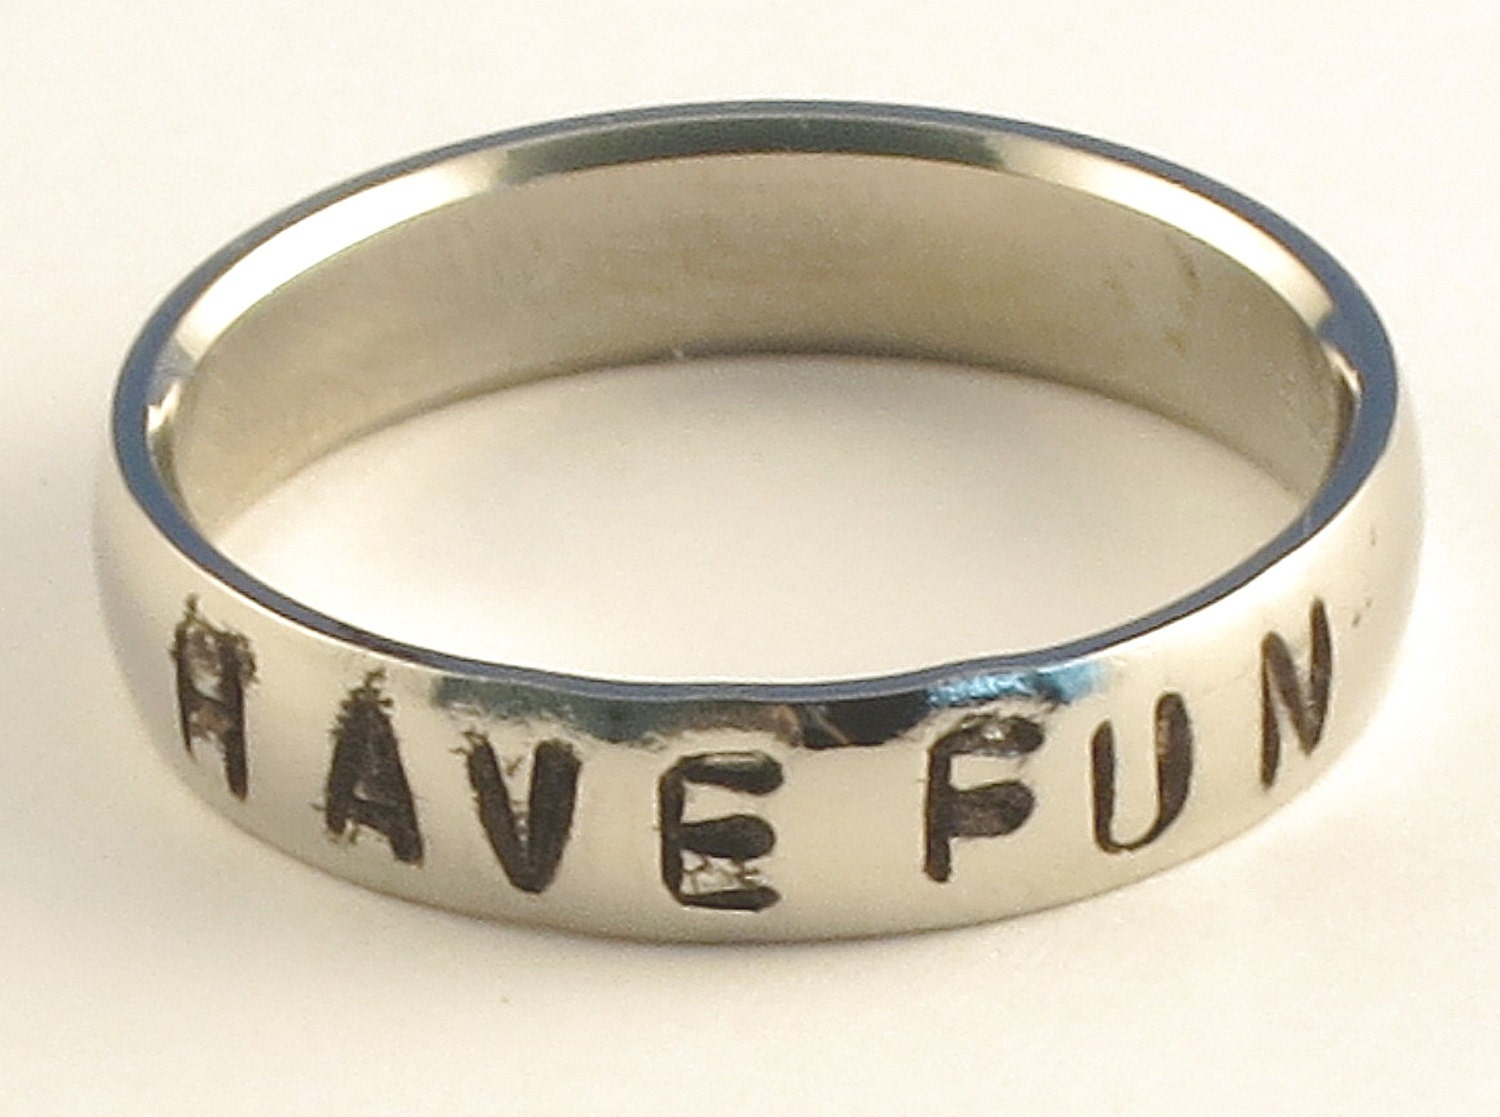 HAVE FUN - Personalized Hand Stamped Customized Stainless Steel Low Dome Name Ring 5mm Ring Sizes 3-14